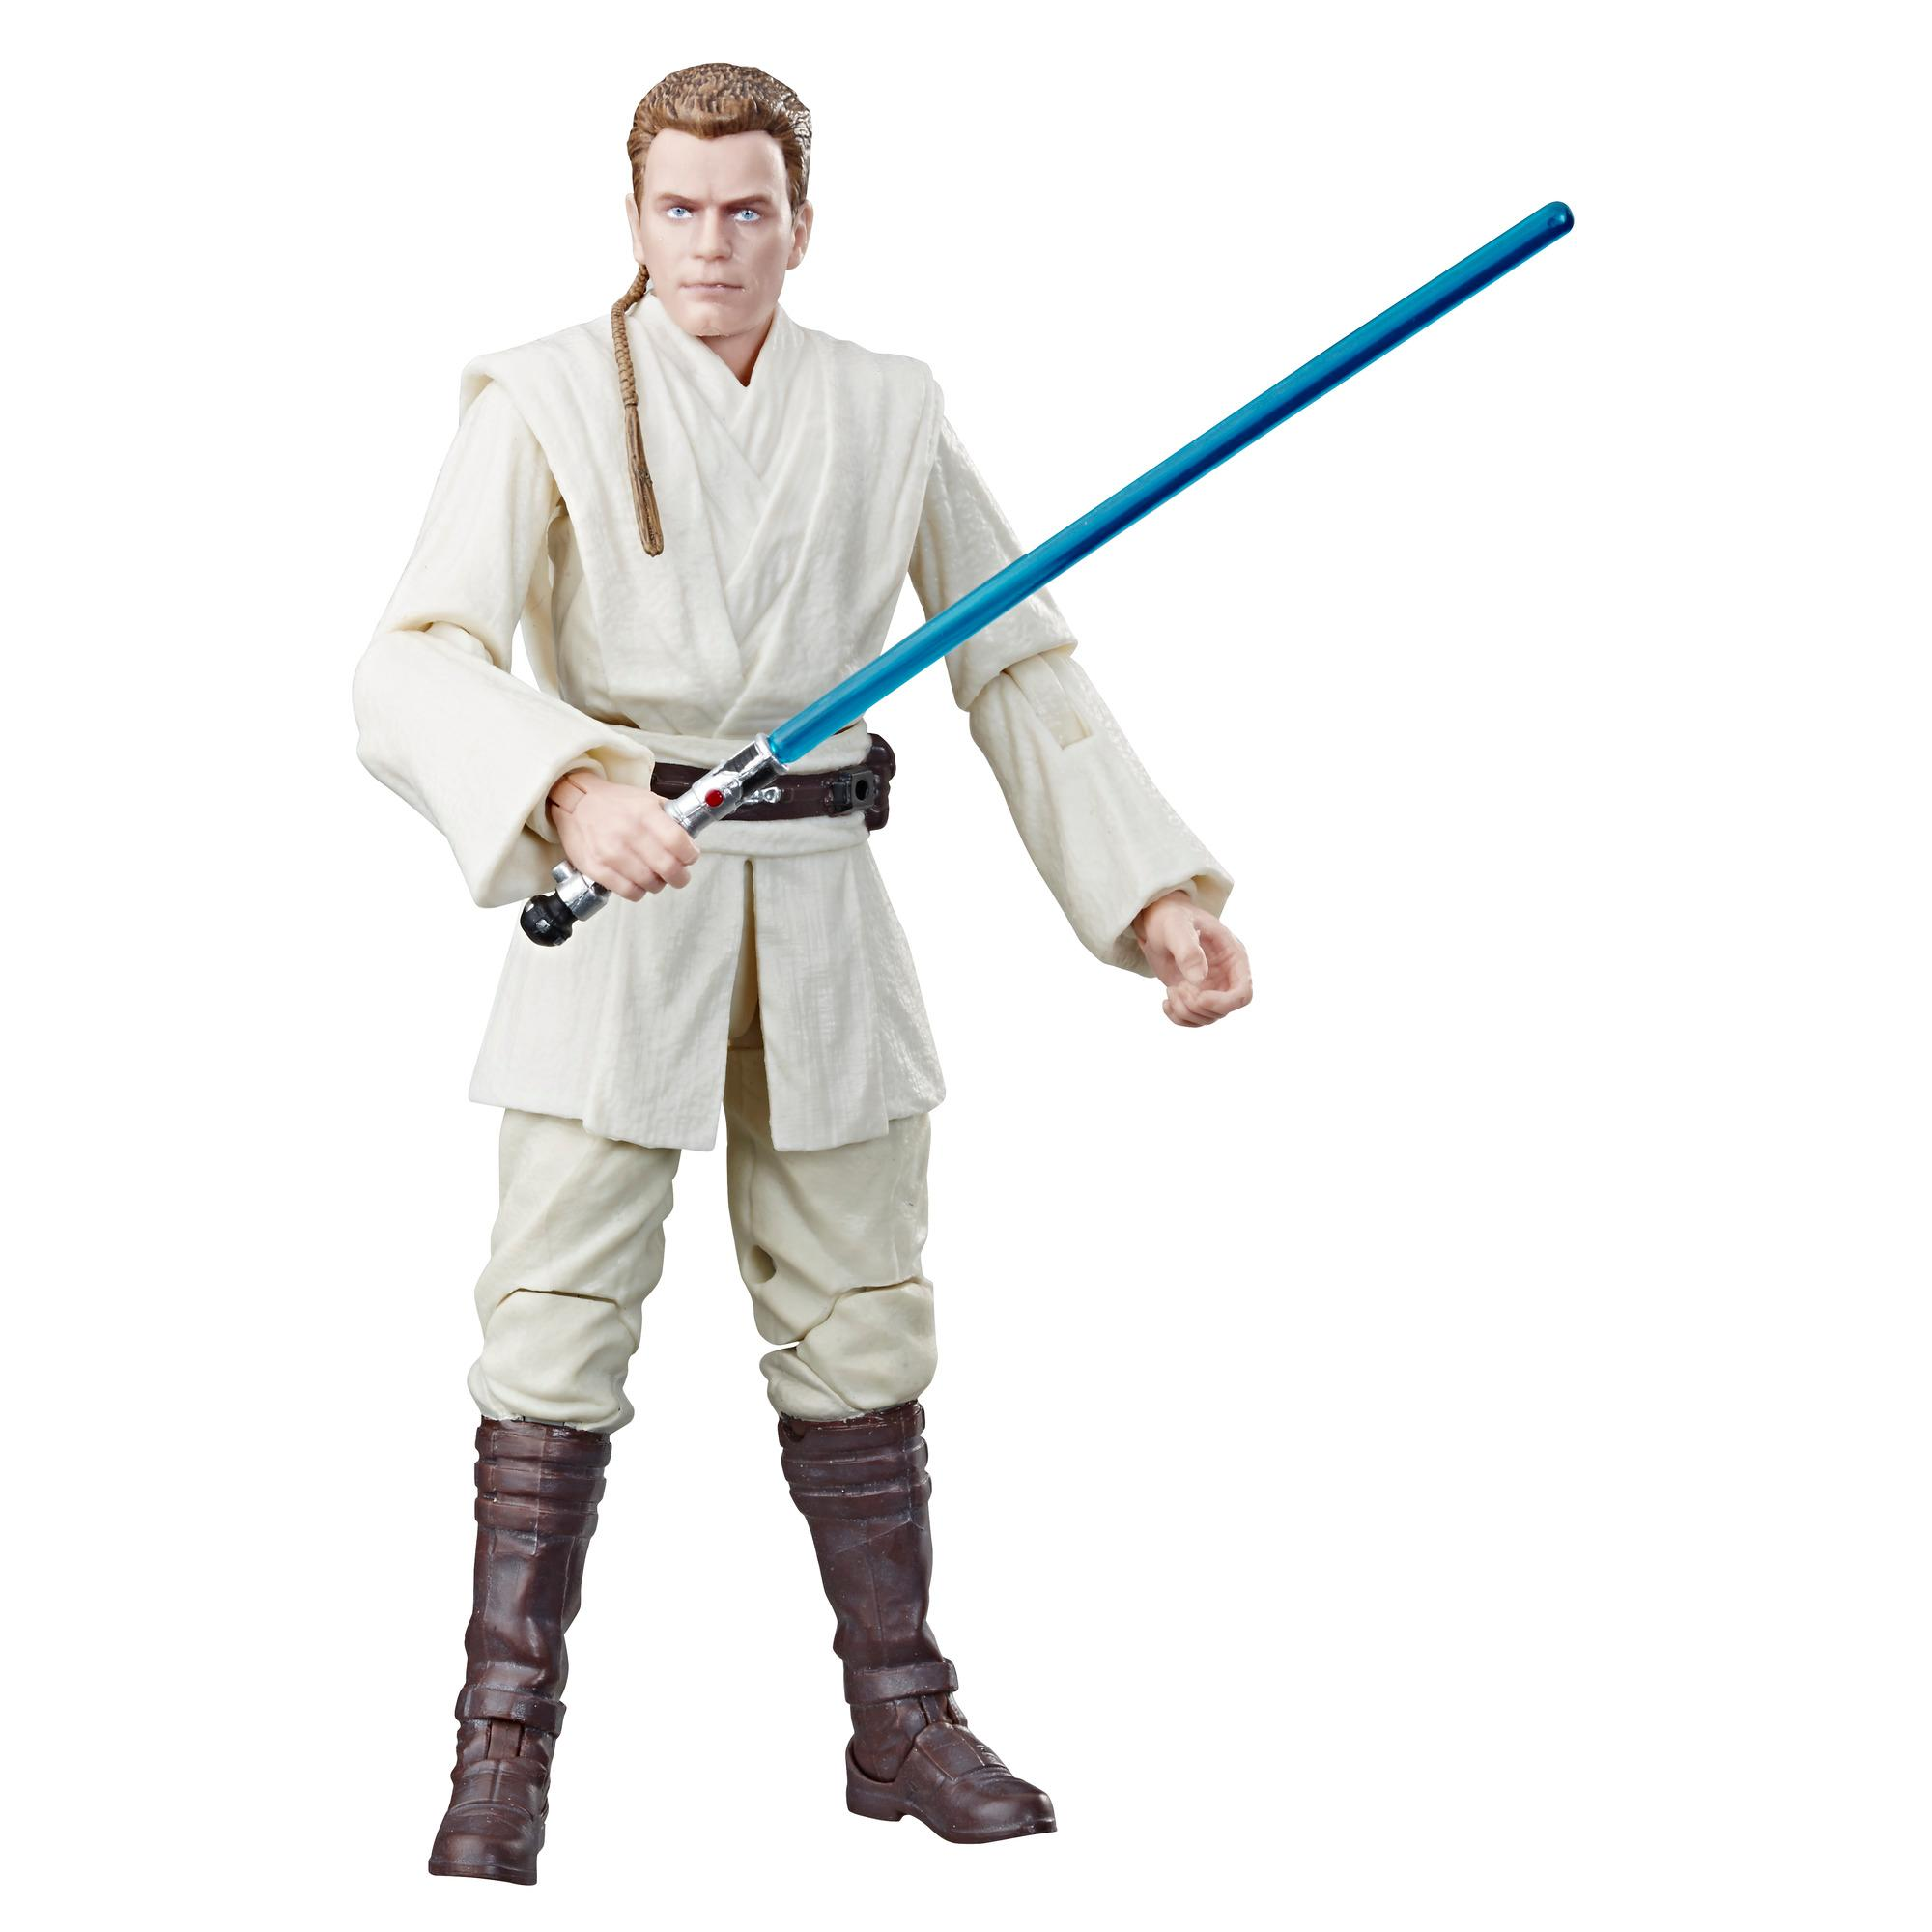 Star Wars The Black Series Star Wars Episode 1: The Phantom Menace 6-Inch-Scale Obi-Wan Kenobi Figure